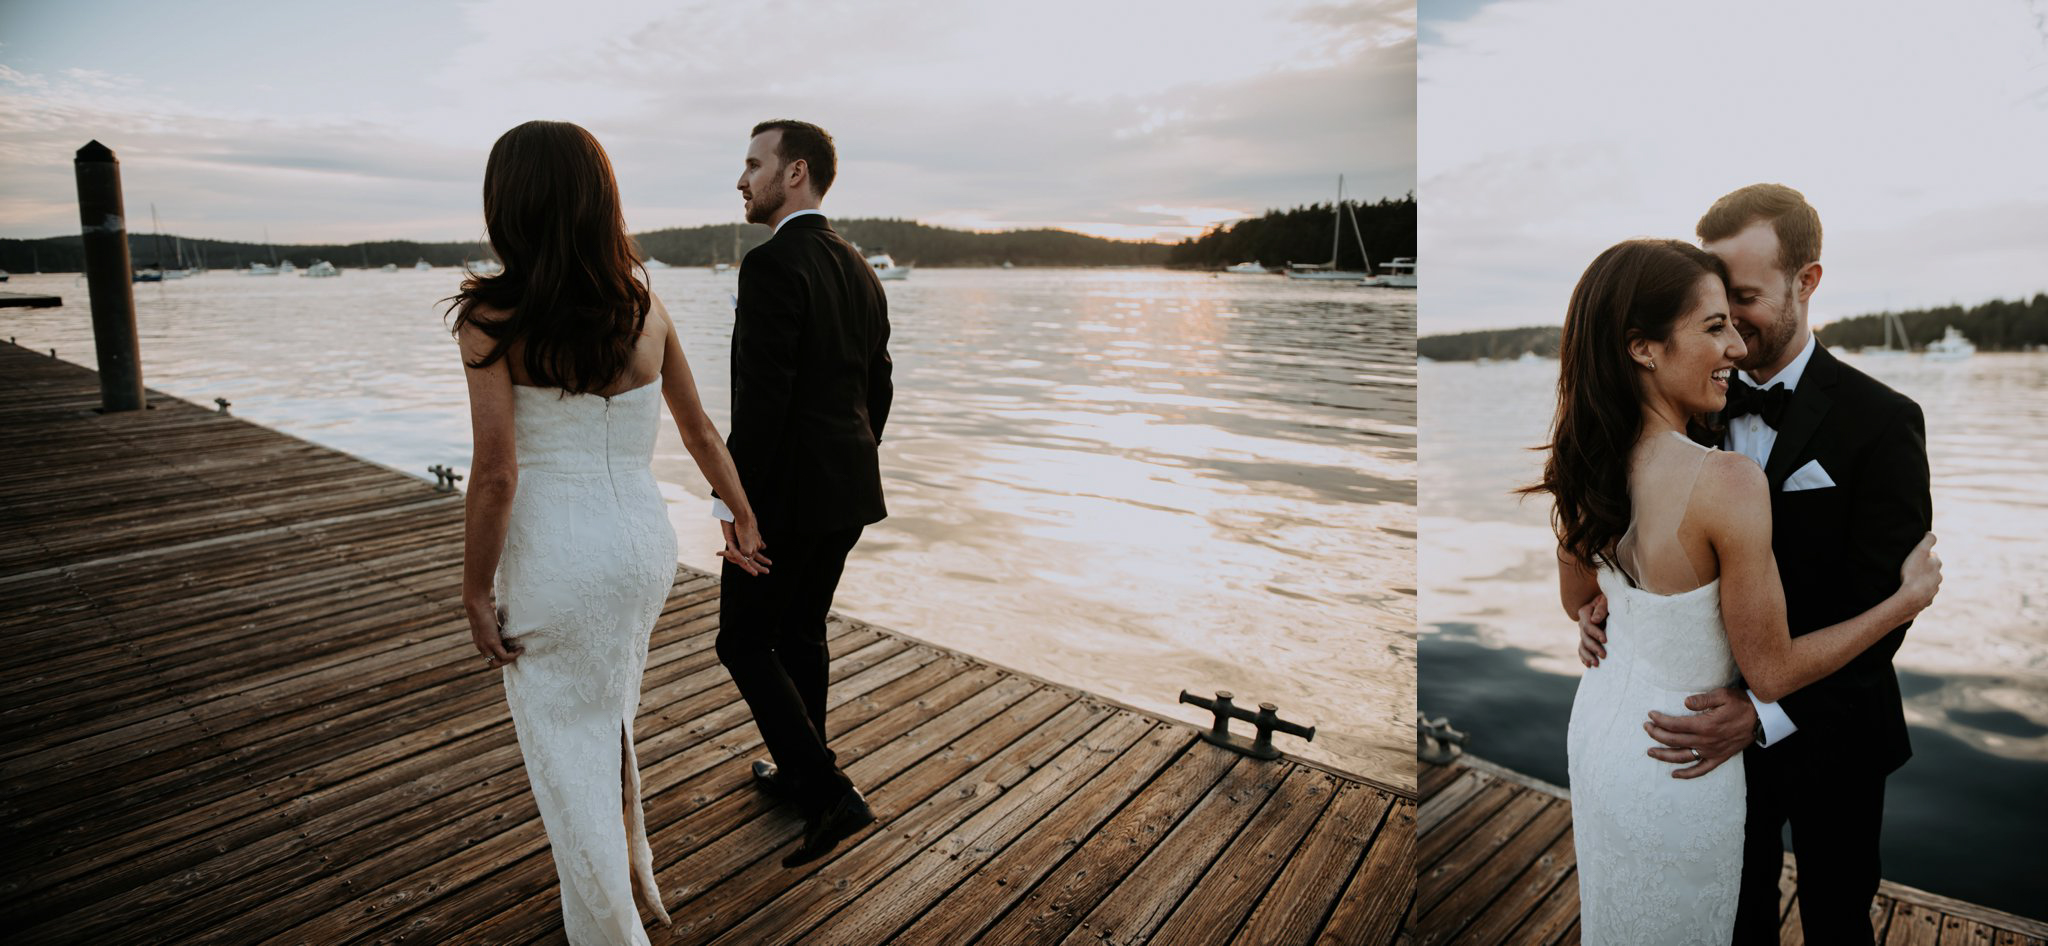 roche-harbor-resort-sand-juan-island-wedding-seattle-wedding-photograher-caitlyn-nikula-150.jpg